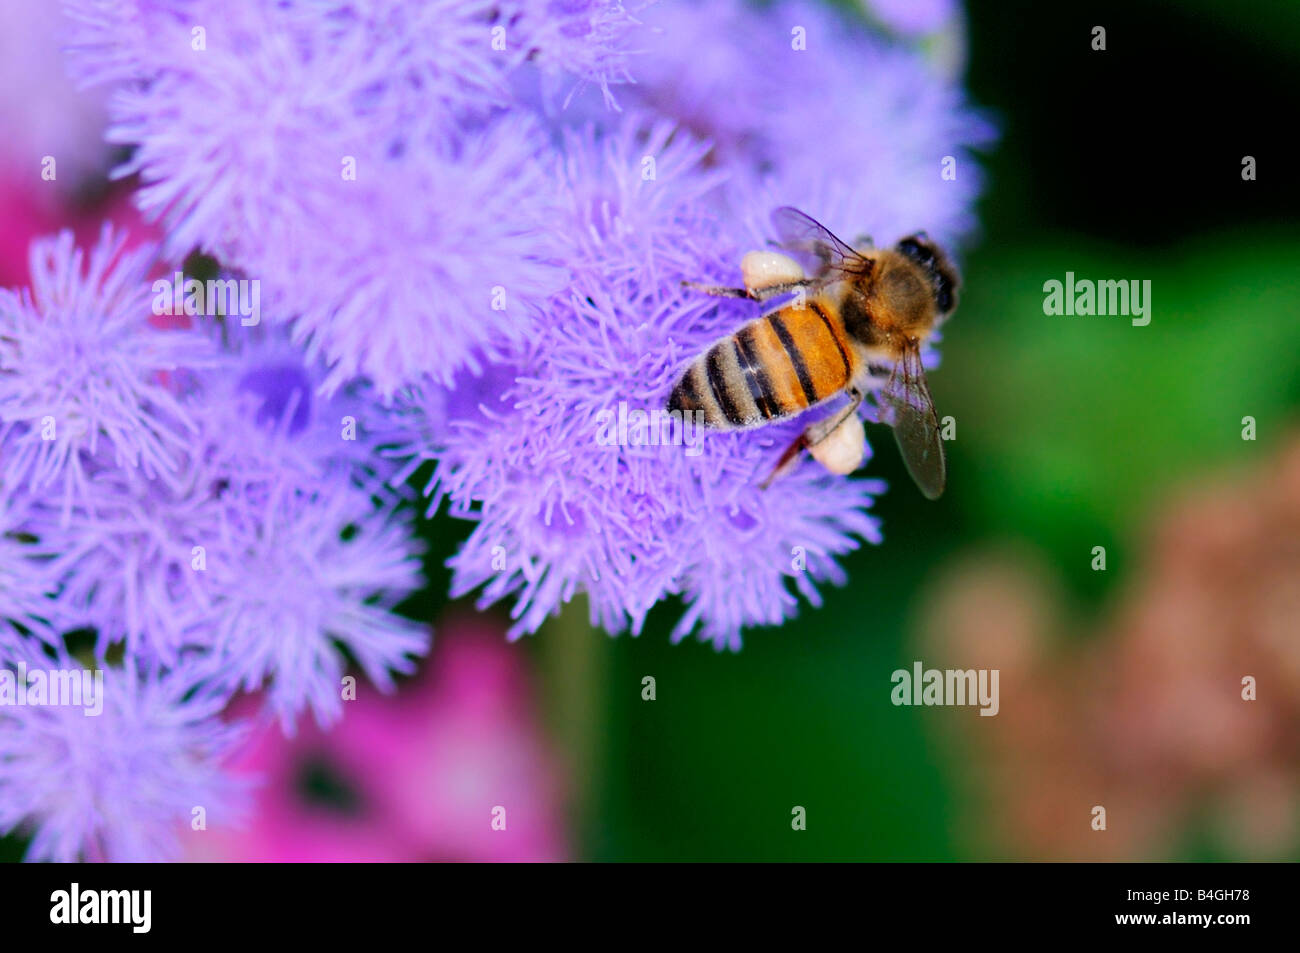 A honey bee, Apis mellifera, gathers pollen from Ageratum. Oklahoma, USA. - Stock Image